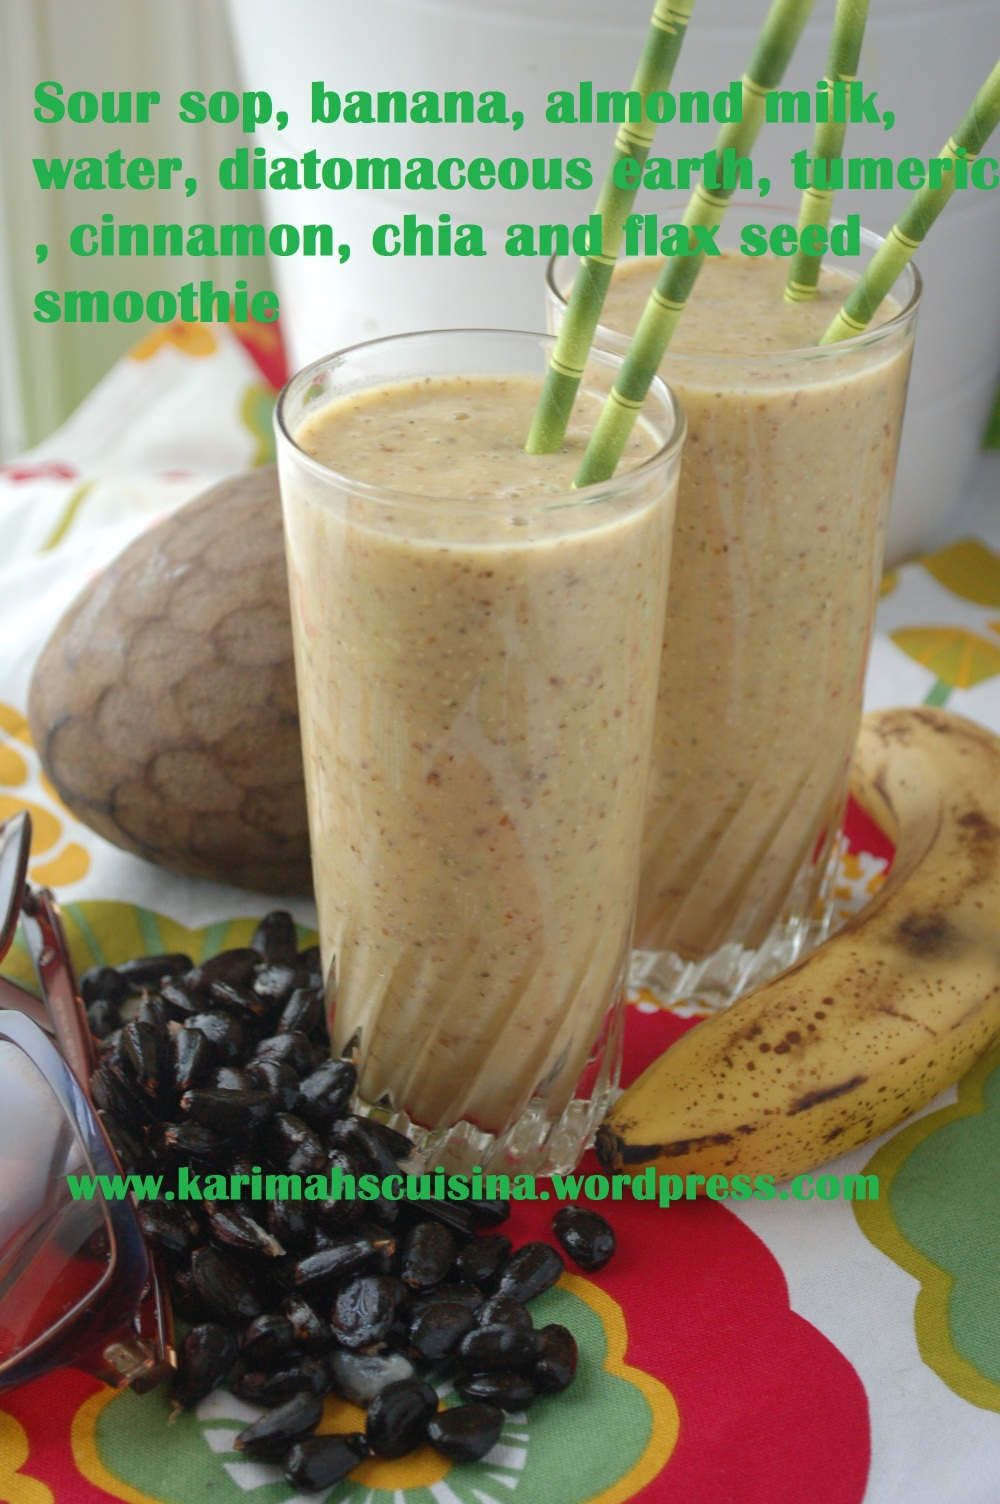 https://karimahscuisina.files.wordpress.com/2013/10/sour-sop-smoothie-055-tex.jpg